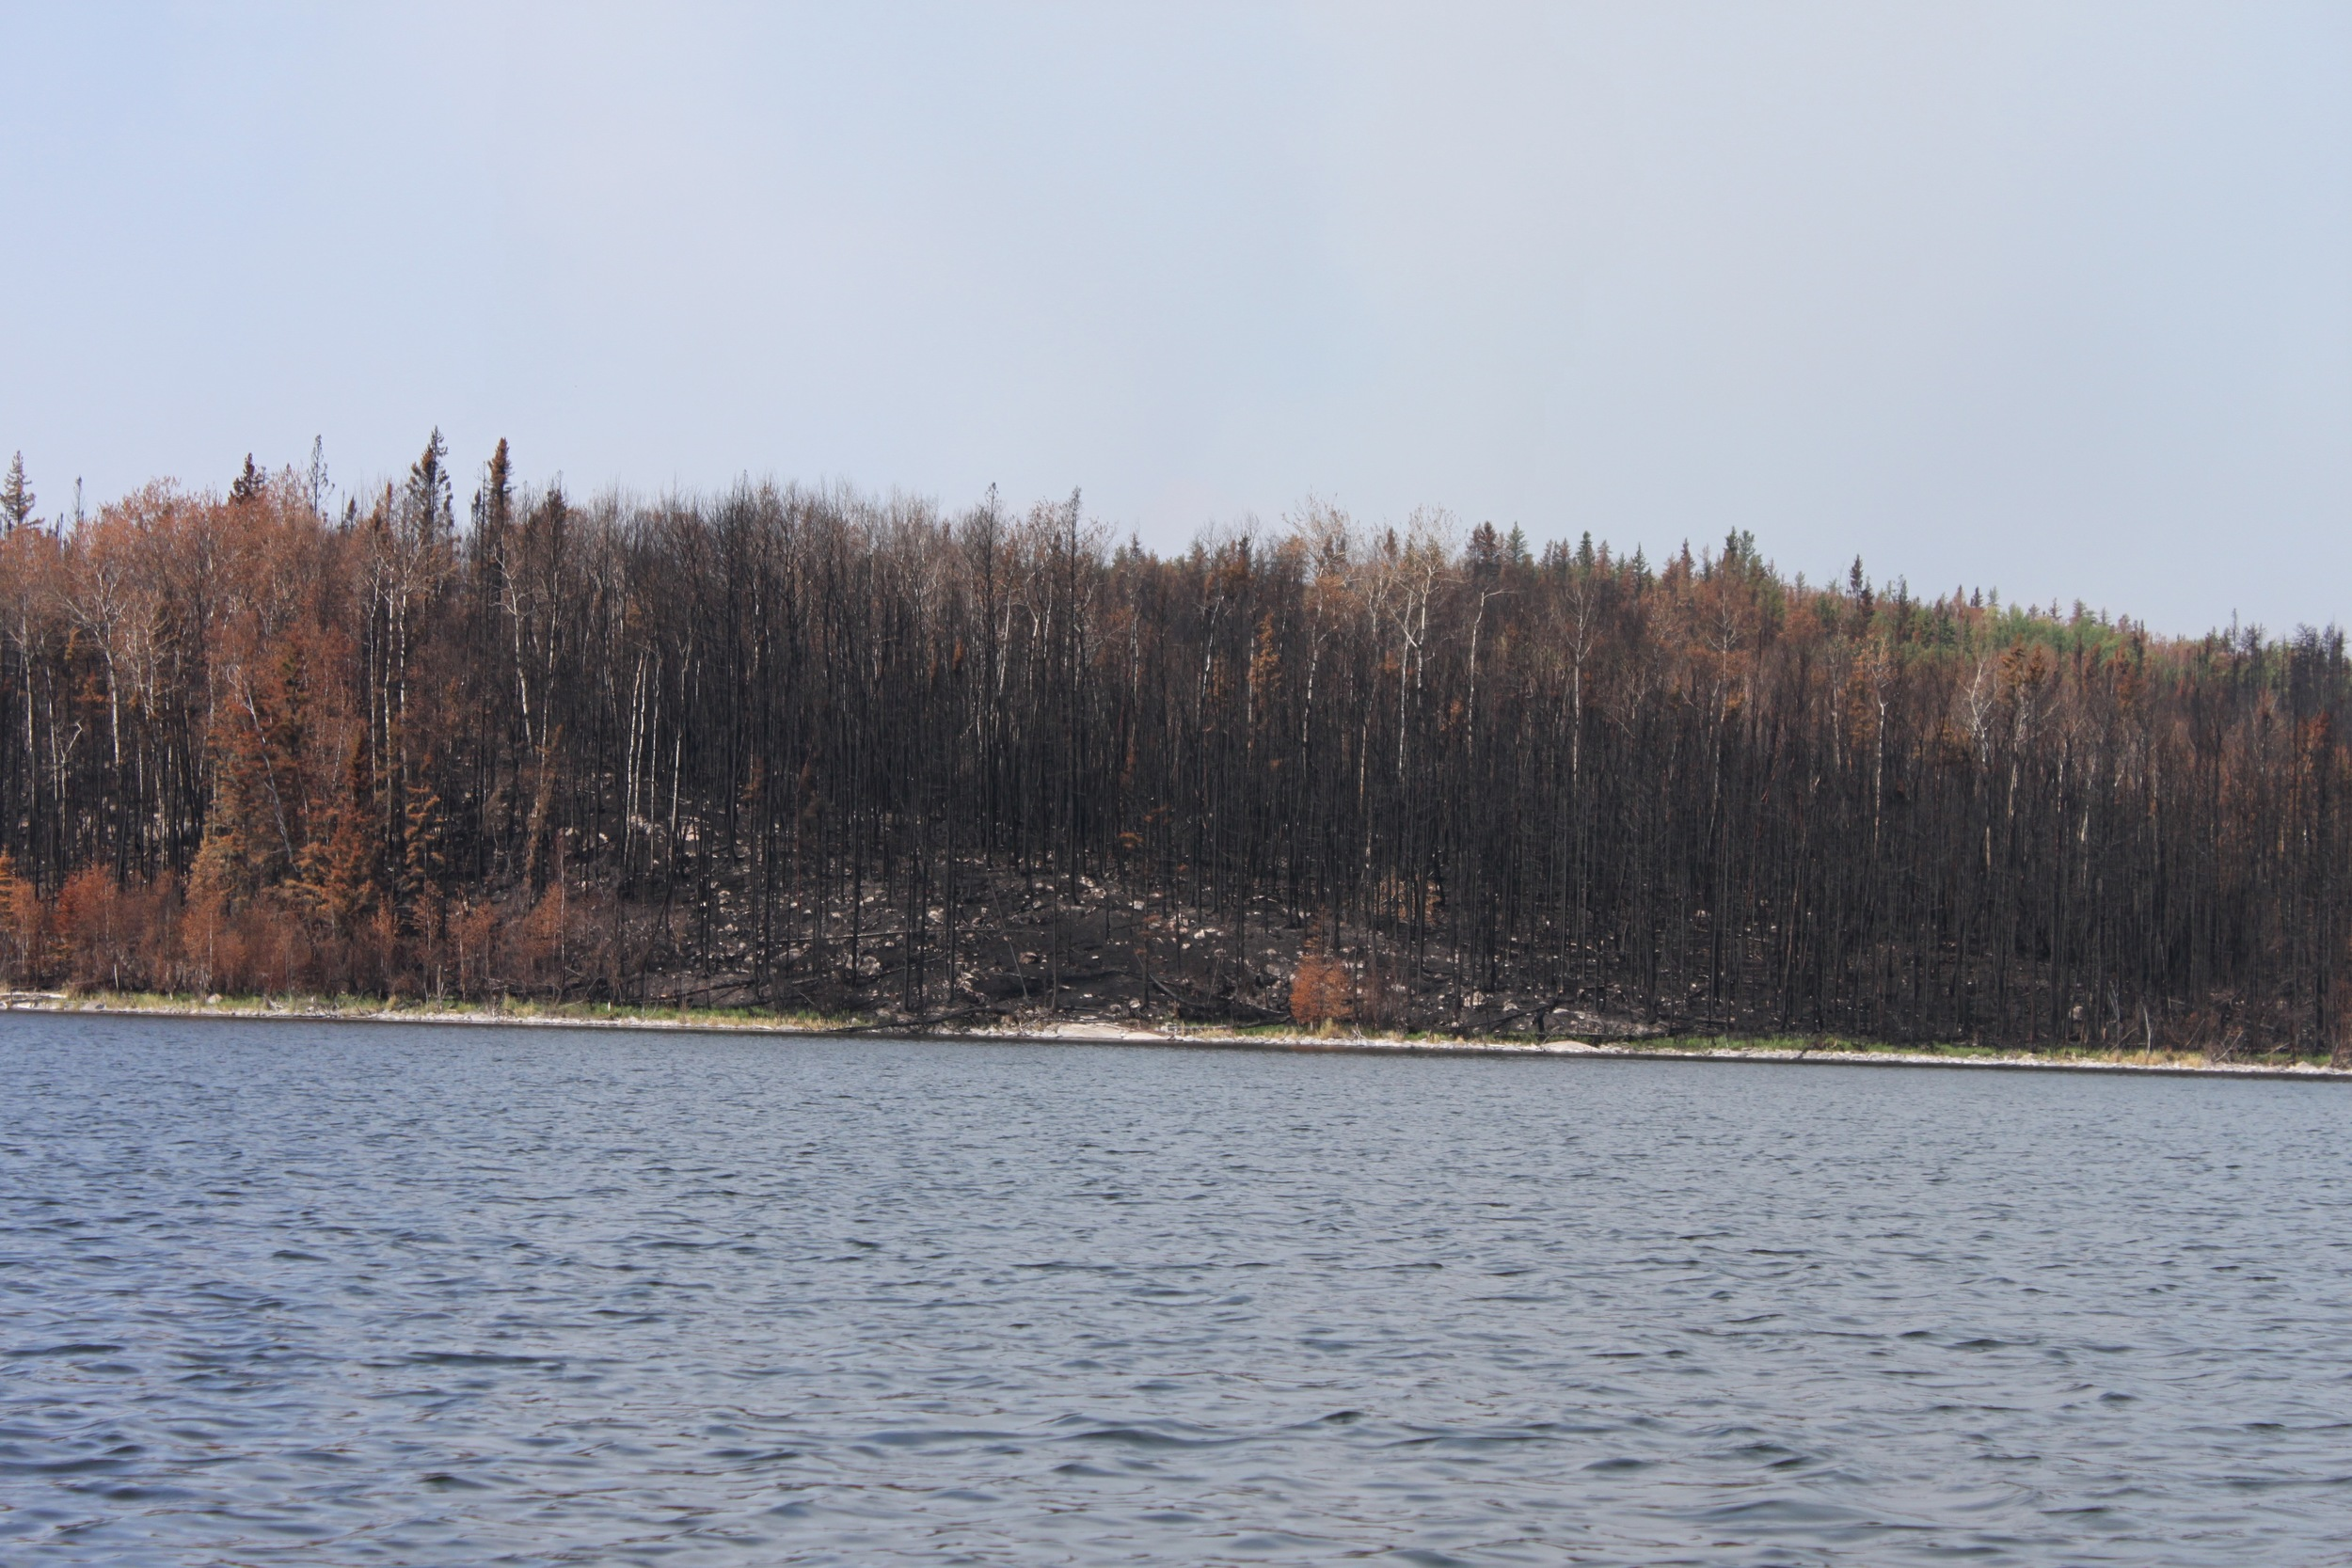 Not only bad to look at, the burn areas were especially difficultfor camping